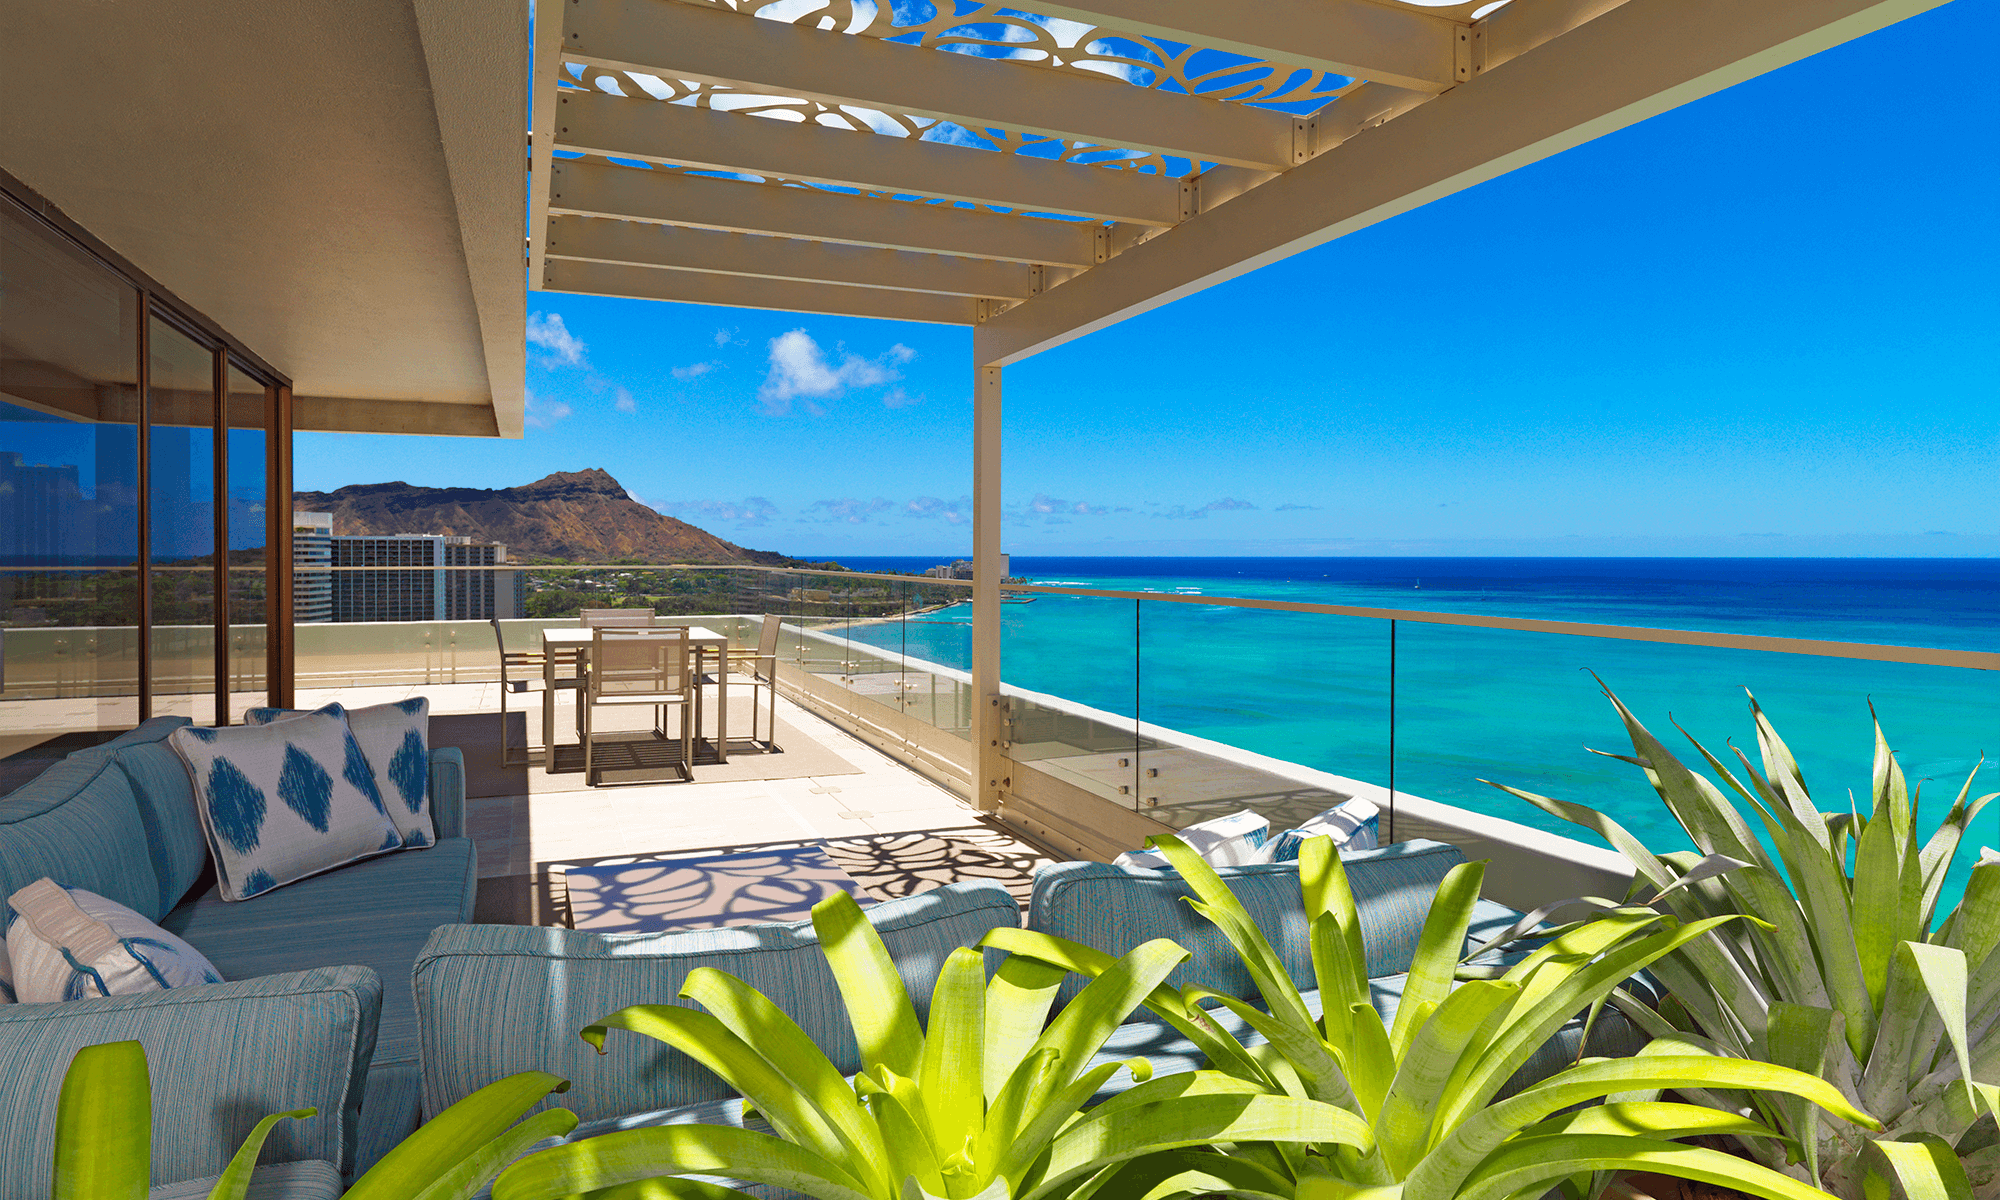 Moana Surfrider penthouse balcony and Penthouse Architecture, Interior Design, and layout